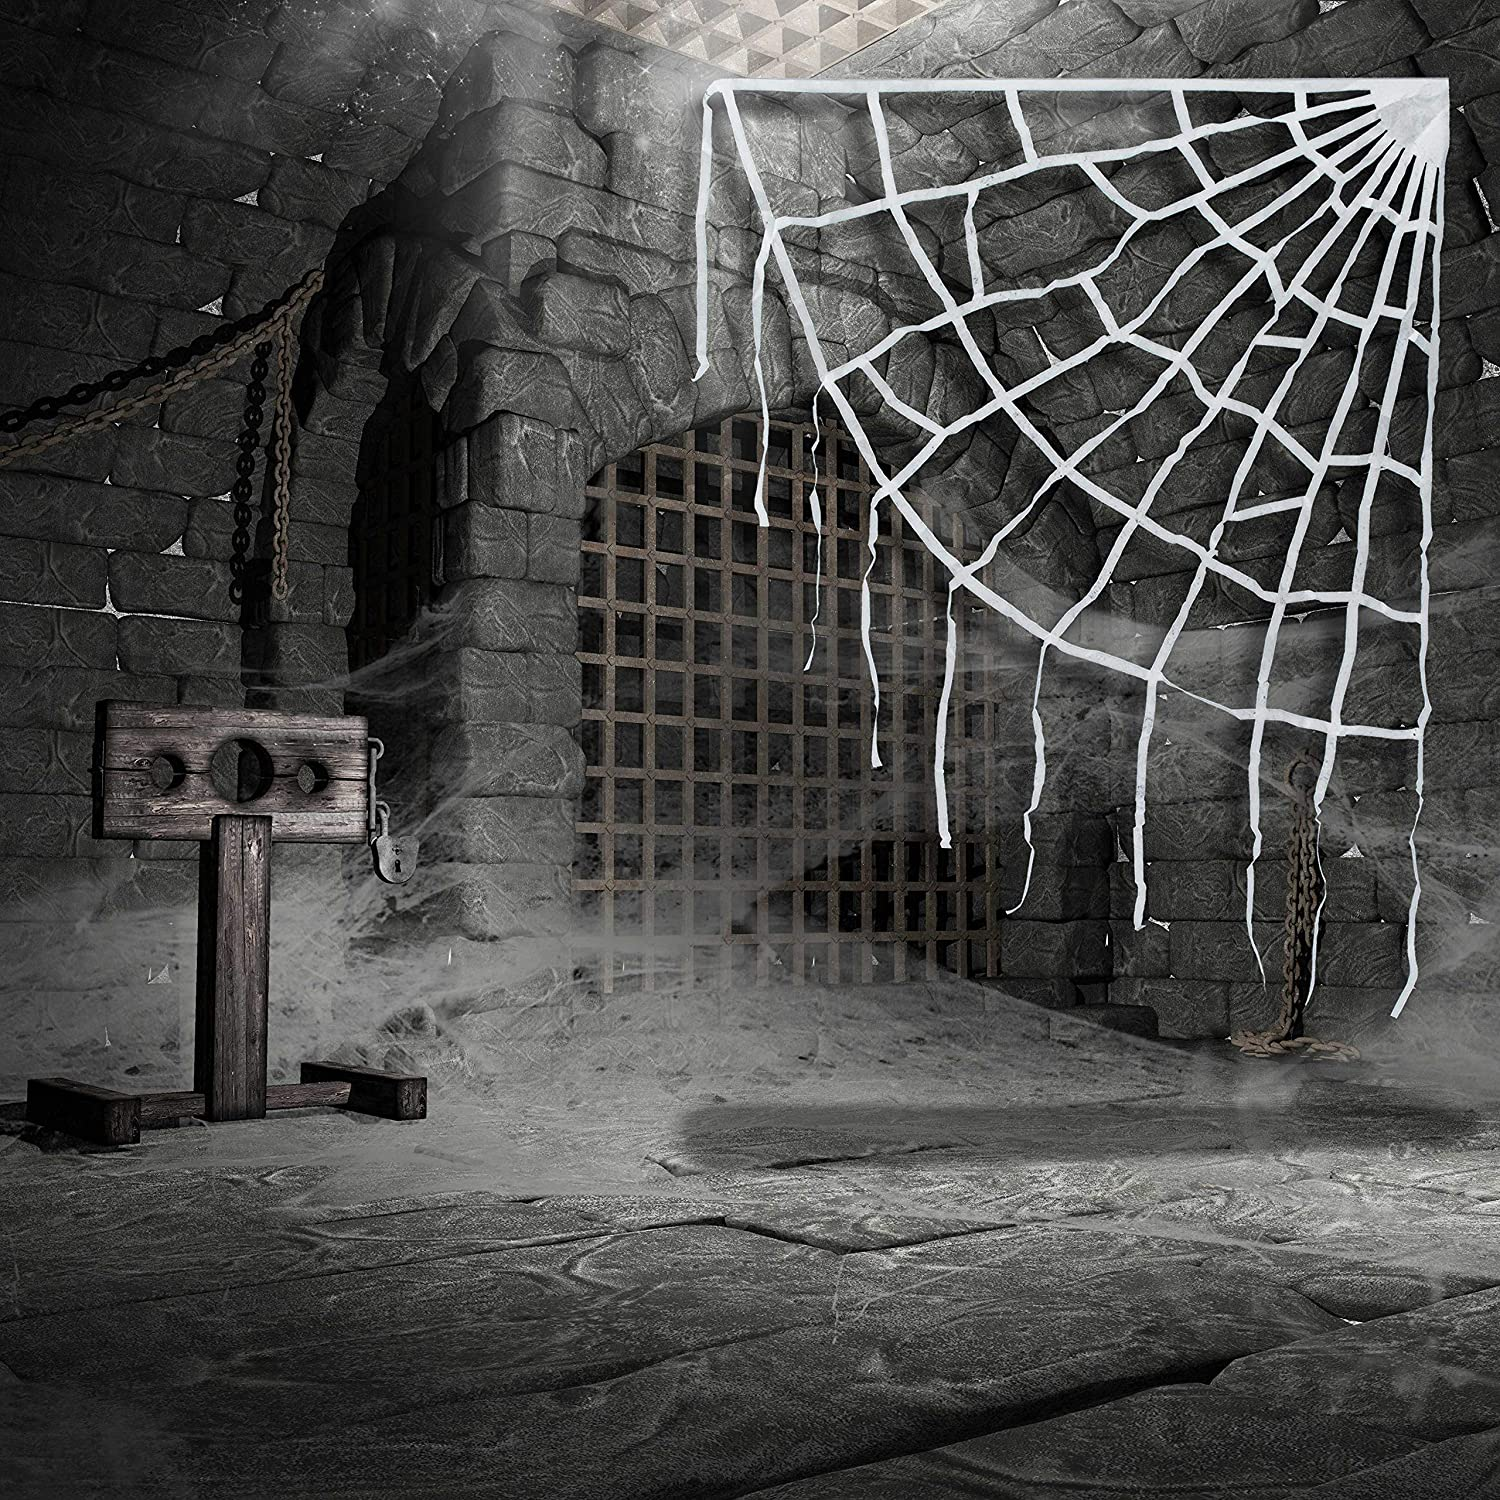 Yard Haunted House Graveyard Entryway Party Display Halloween Haunters 7 Foot Realistic Scary White Corner Spider Web Prop Decoration Spooky Realistic Hanging Edge Creepy Crawly Oversized Cobweb